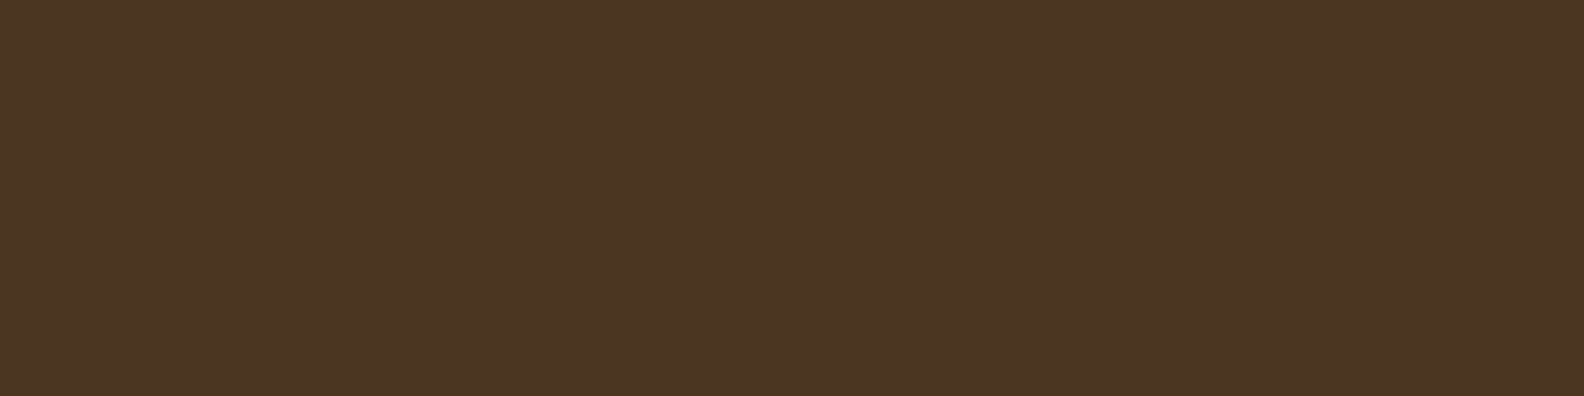 1584x396 Cafe Noir Solid Color Background